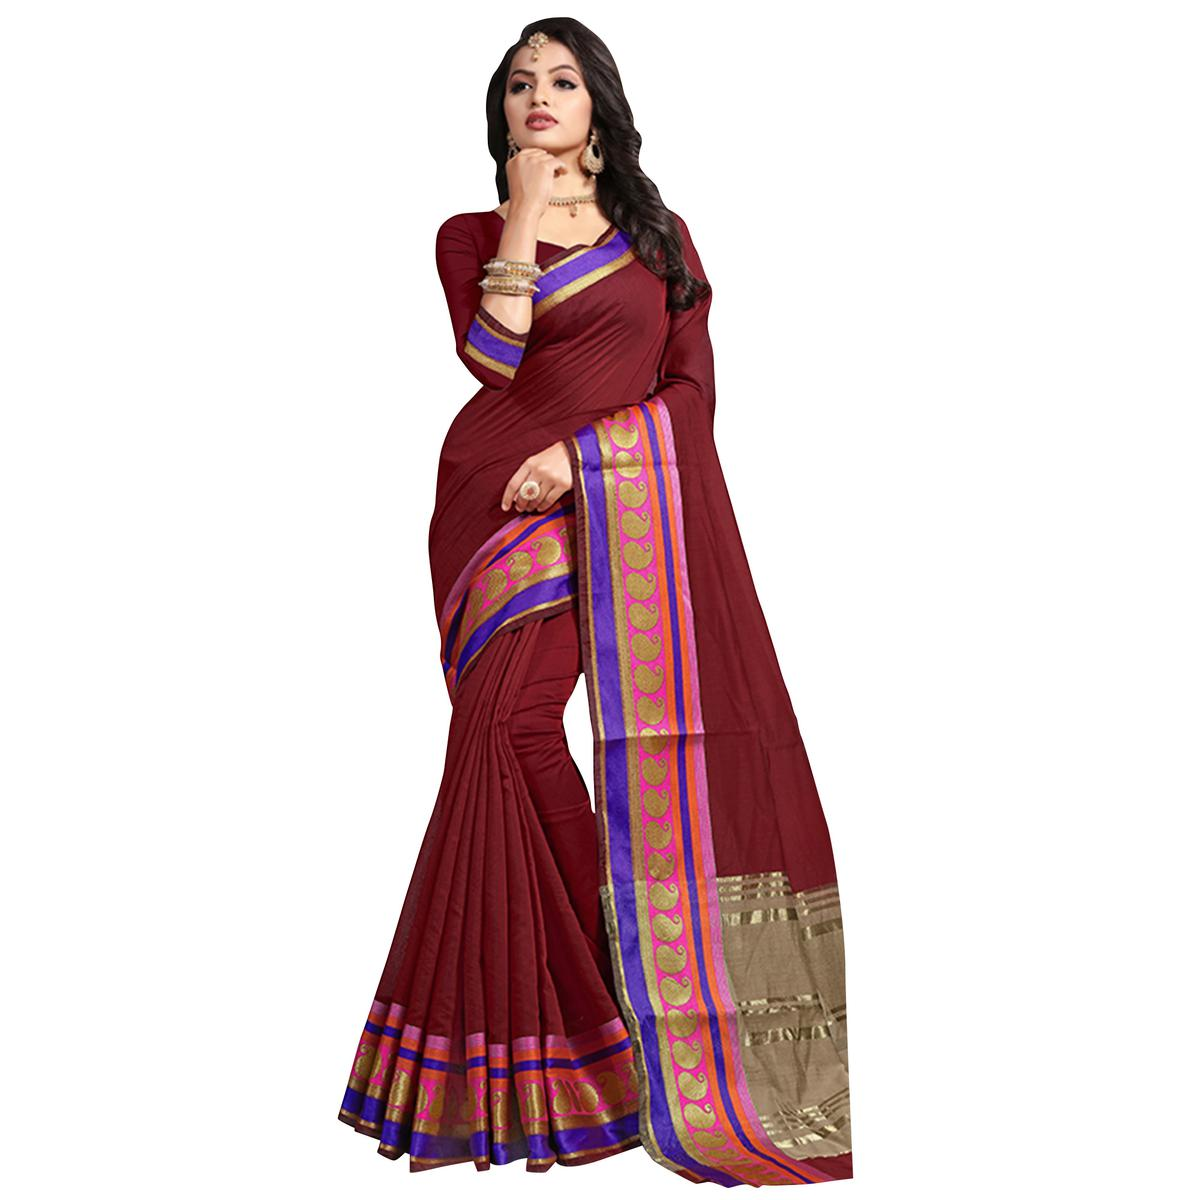 Majestic Maroon Colored Festive Wear Cotton Saree